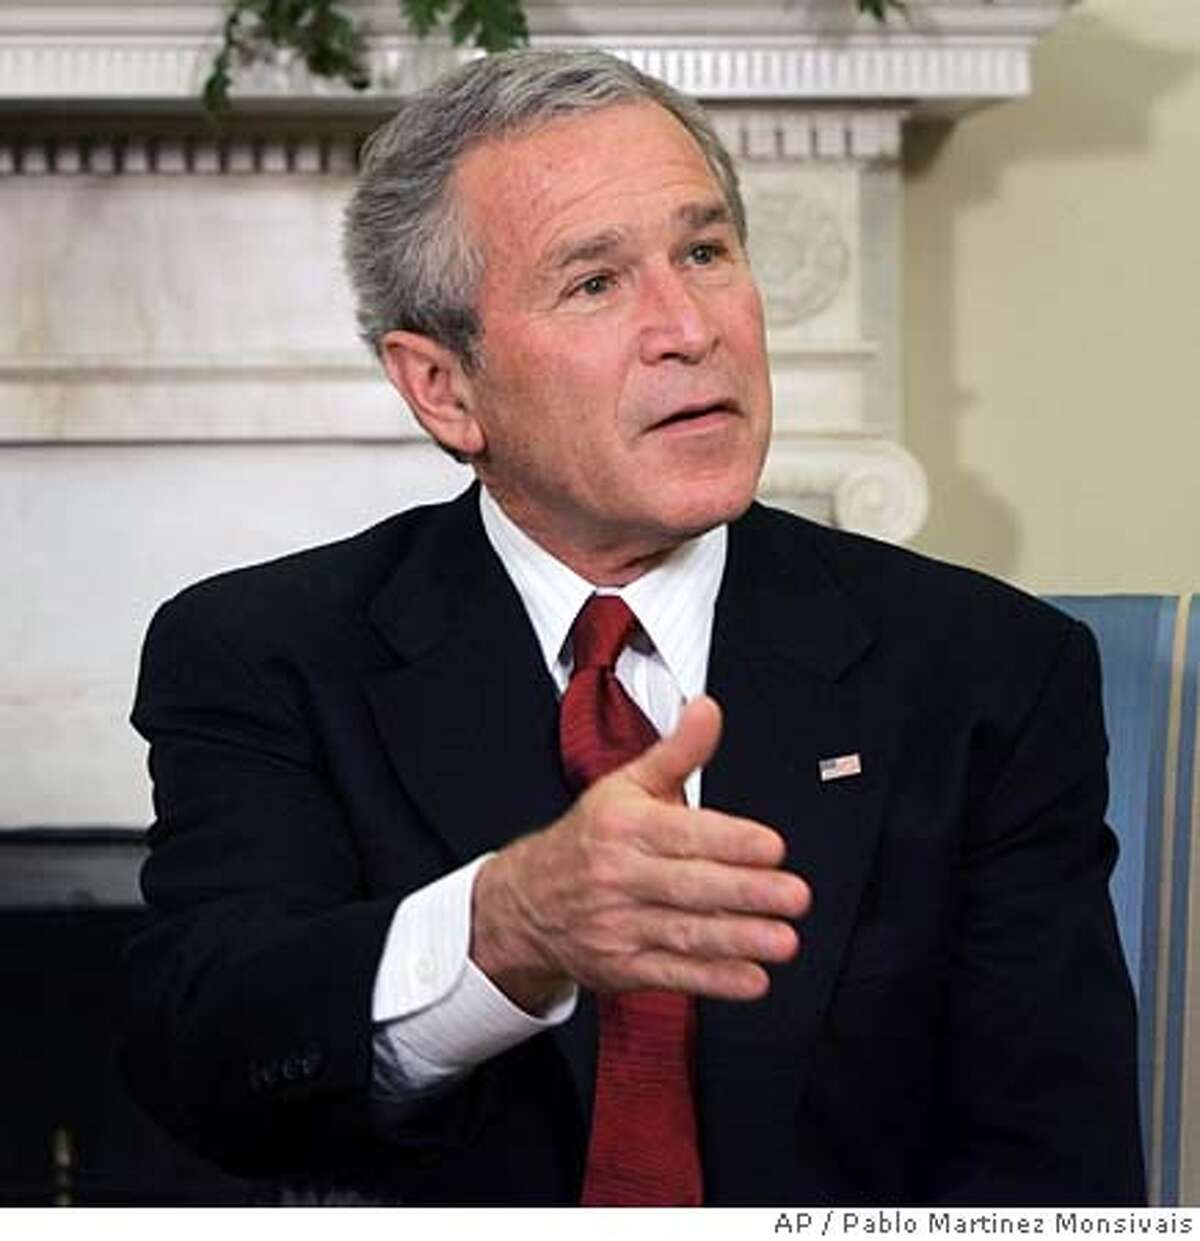 """President Bush gestures as he answers question during his meeting with the Prime Minister of Denmark in the Oval Office of the White House, Friday, May 20, 2005 in Washington. Bush said that he did not think photos of imprisoned Saddam Hussein clad only in his underwear would incite further anti-American sentiment in Iraq. """"I don't think a photo inspires murderers."""" (AP Photo/Pablo Martinez Monsivais)"""